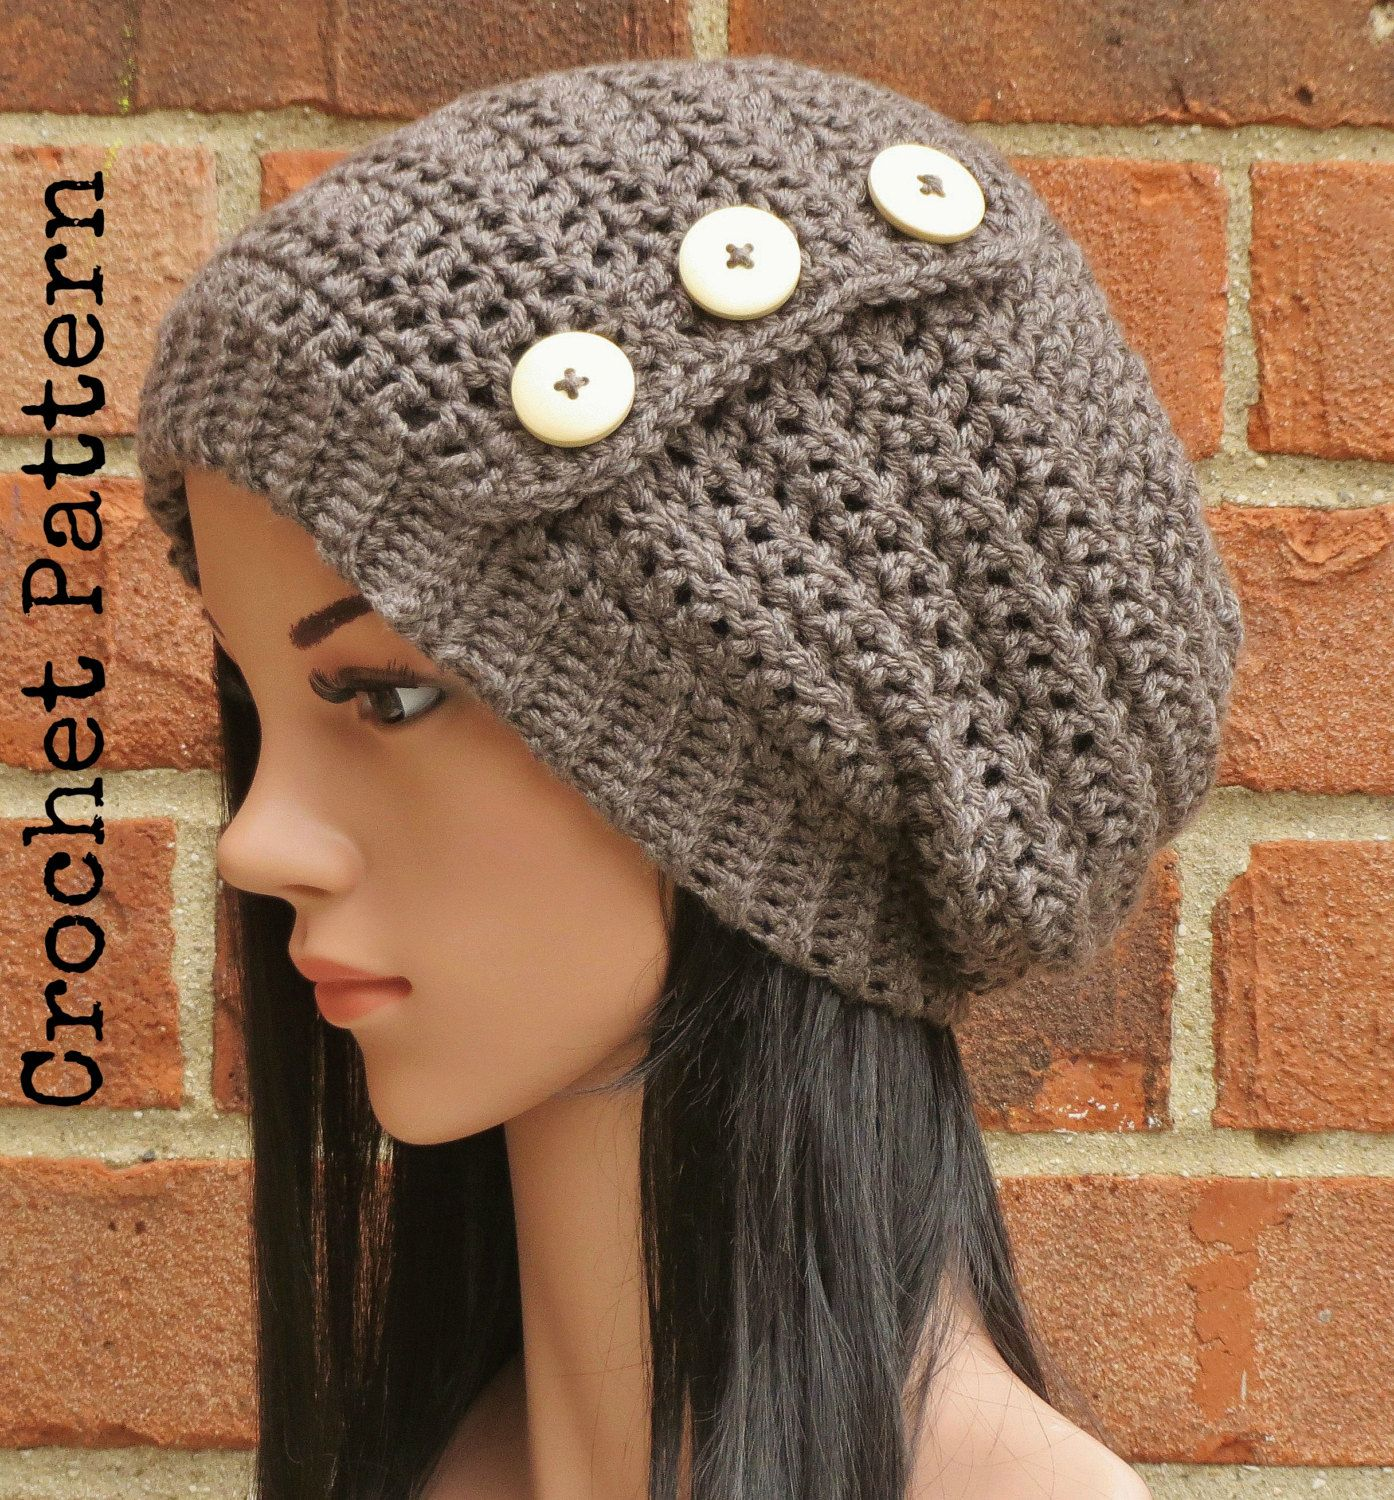 CROCHET HAT PATTERN Instant Pdf Download - Hadley Slouchy Button ...